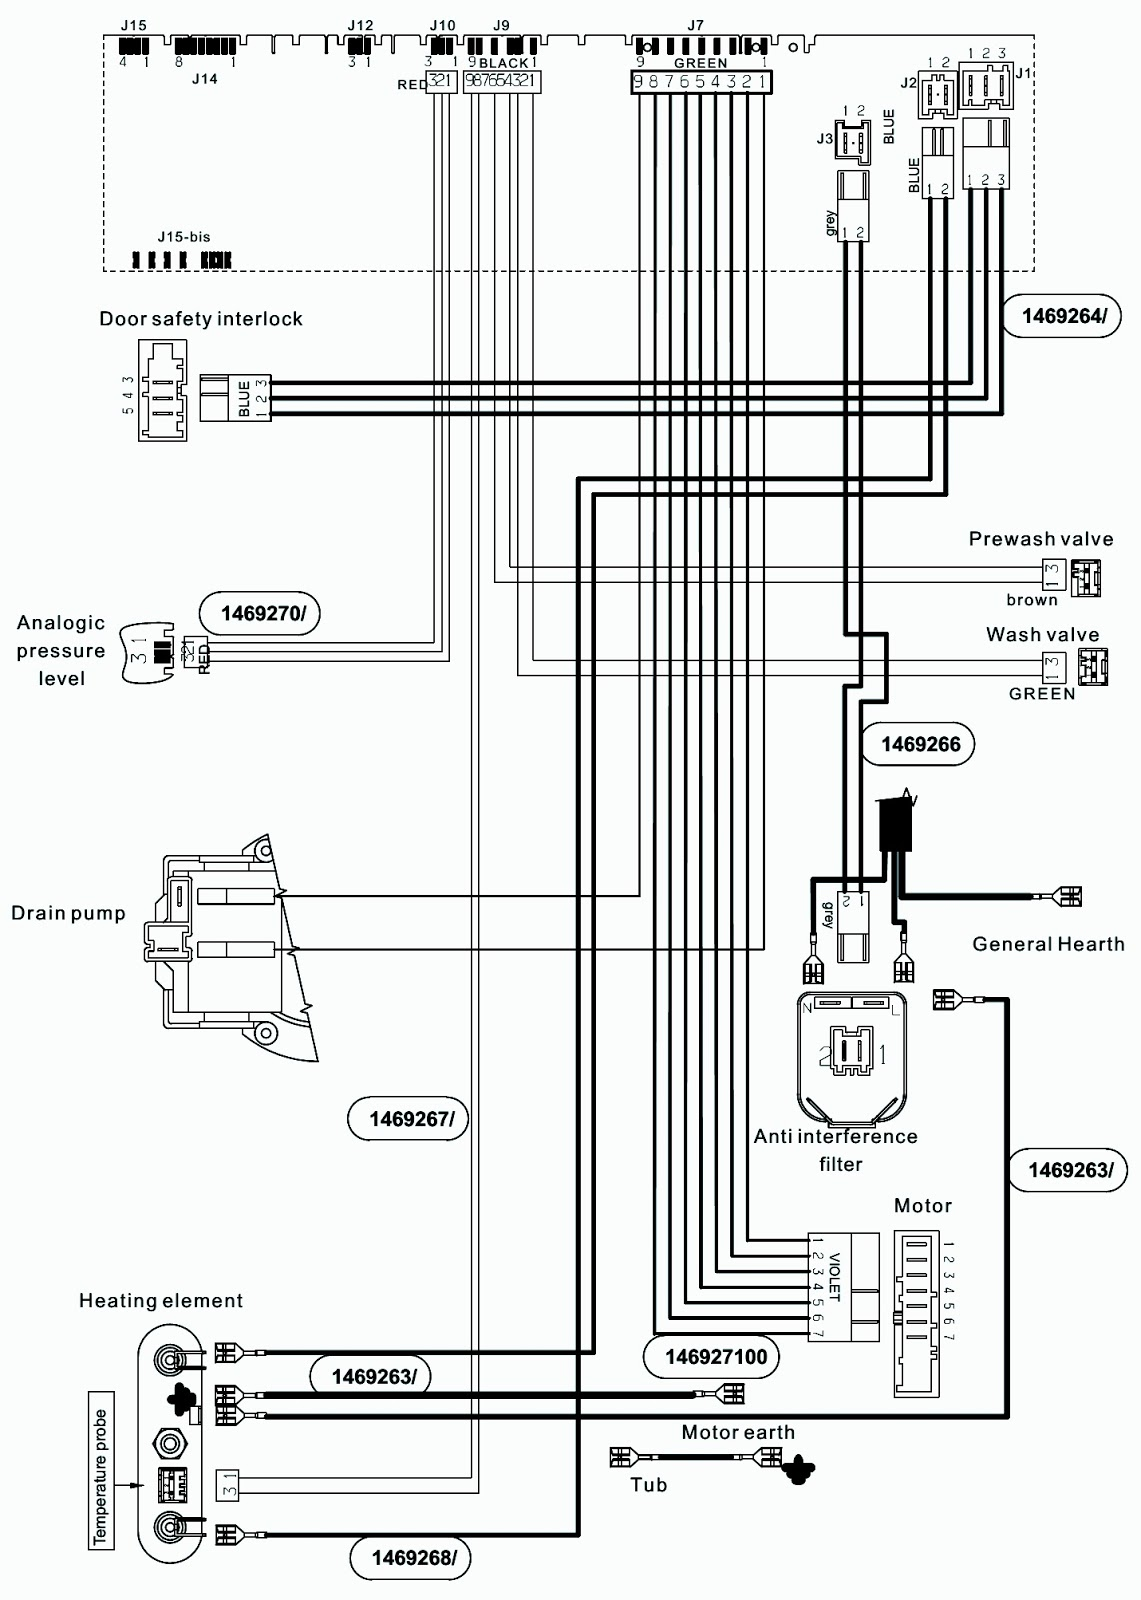 electrical schematic wiring diagram